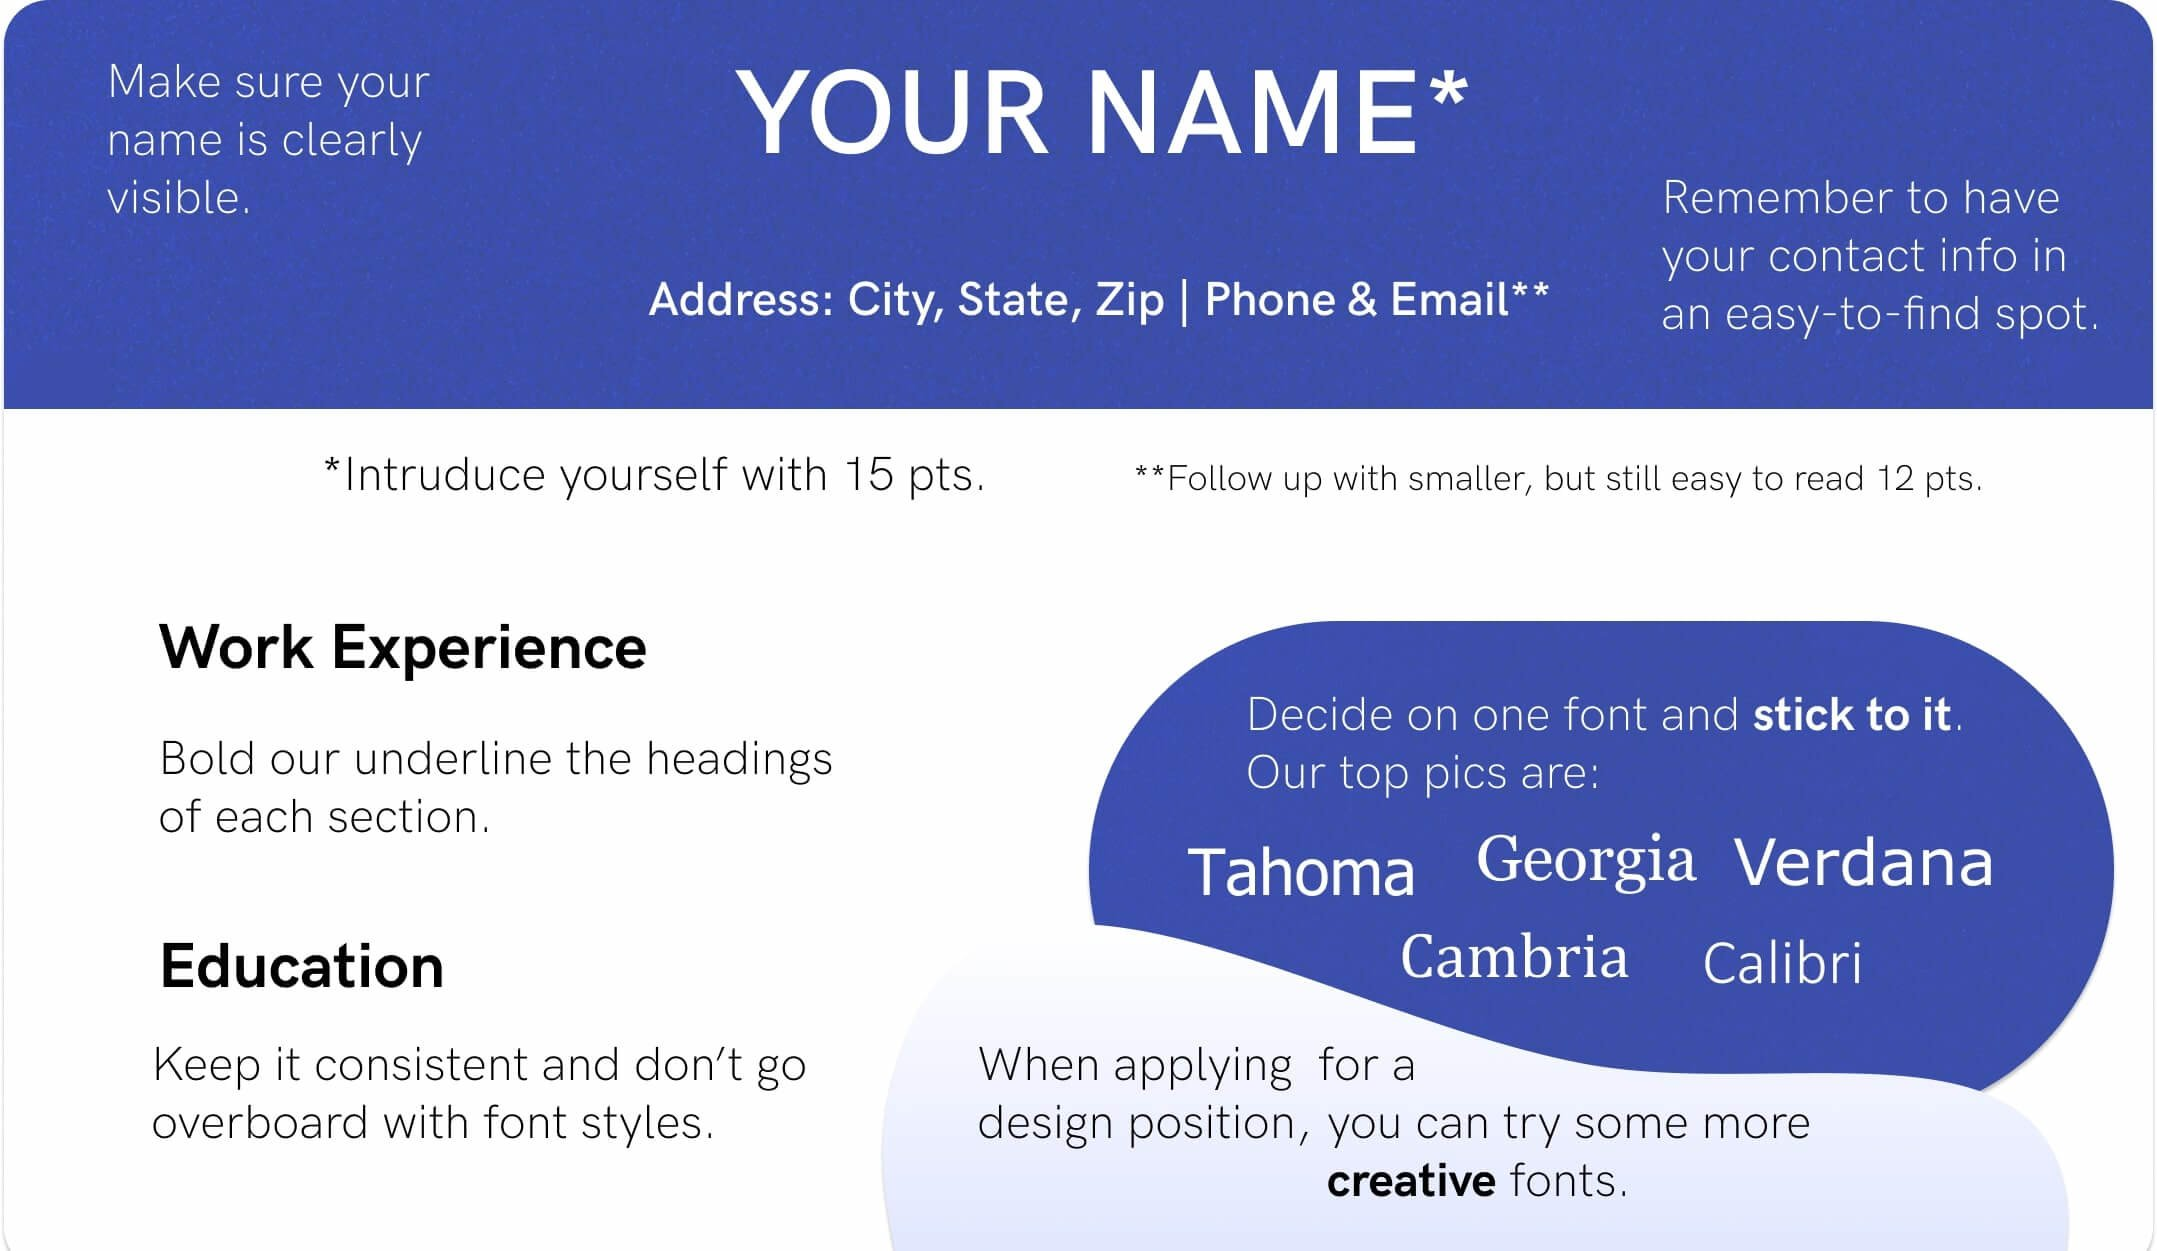 best font for resume size standard professional pairings format fonts example pre service Resume Resume Format Font Size